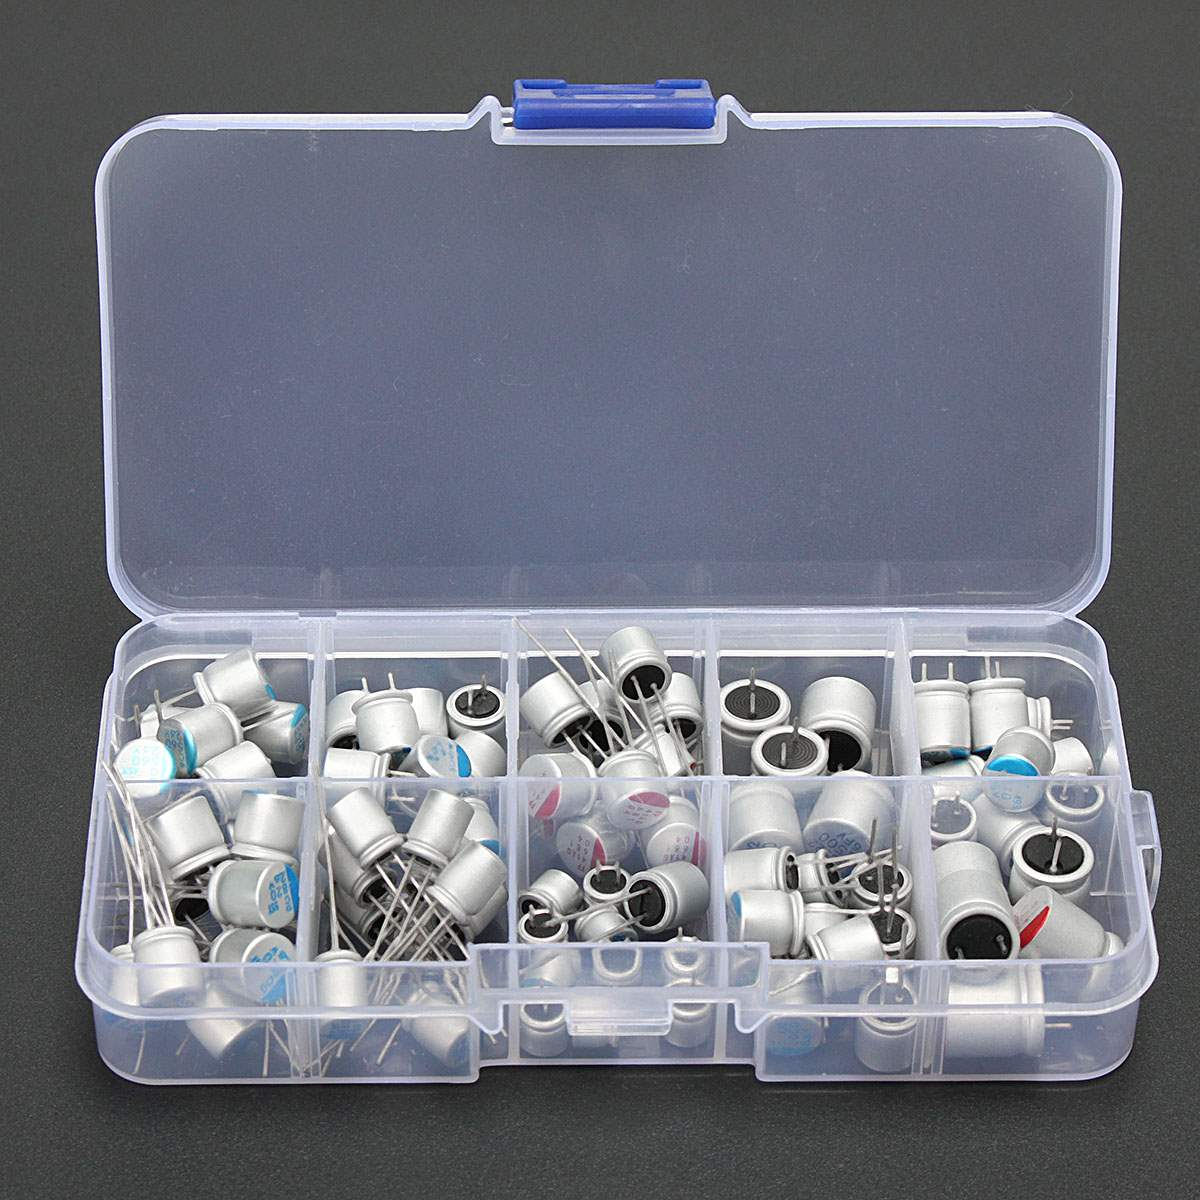 10values 90pcs solid <font><b>capacitor</b></font> assorted kit 2.5V/<font><b>4V</b></font>/6.3V/16V 100uF 270uF 470uF 560uF <font><b>680uF</b></font> 1500uF with free storage box image